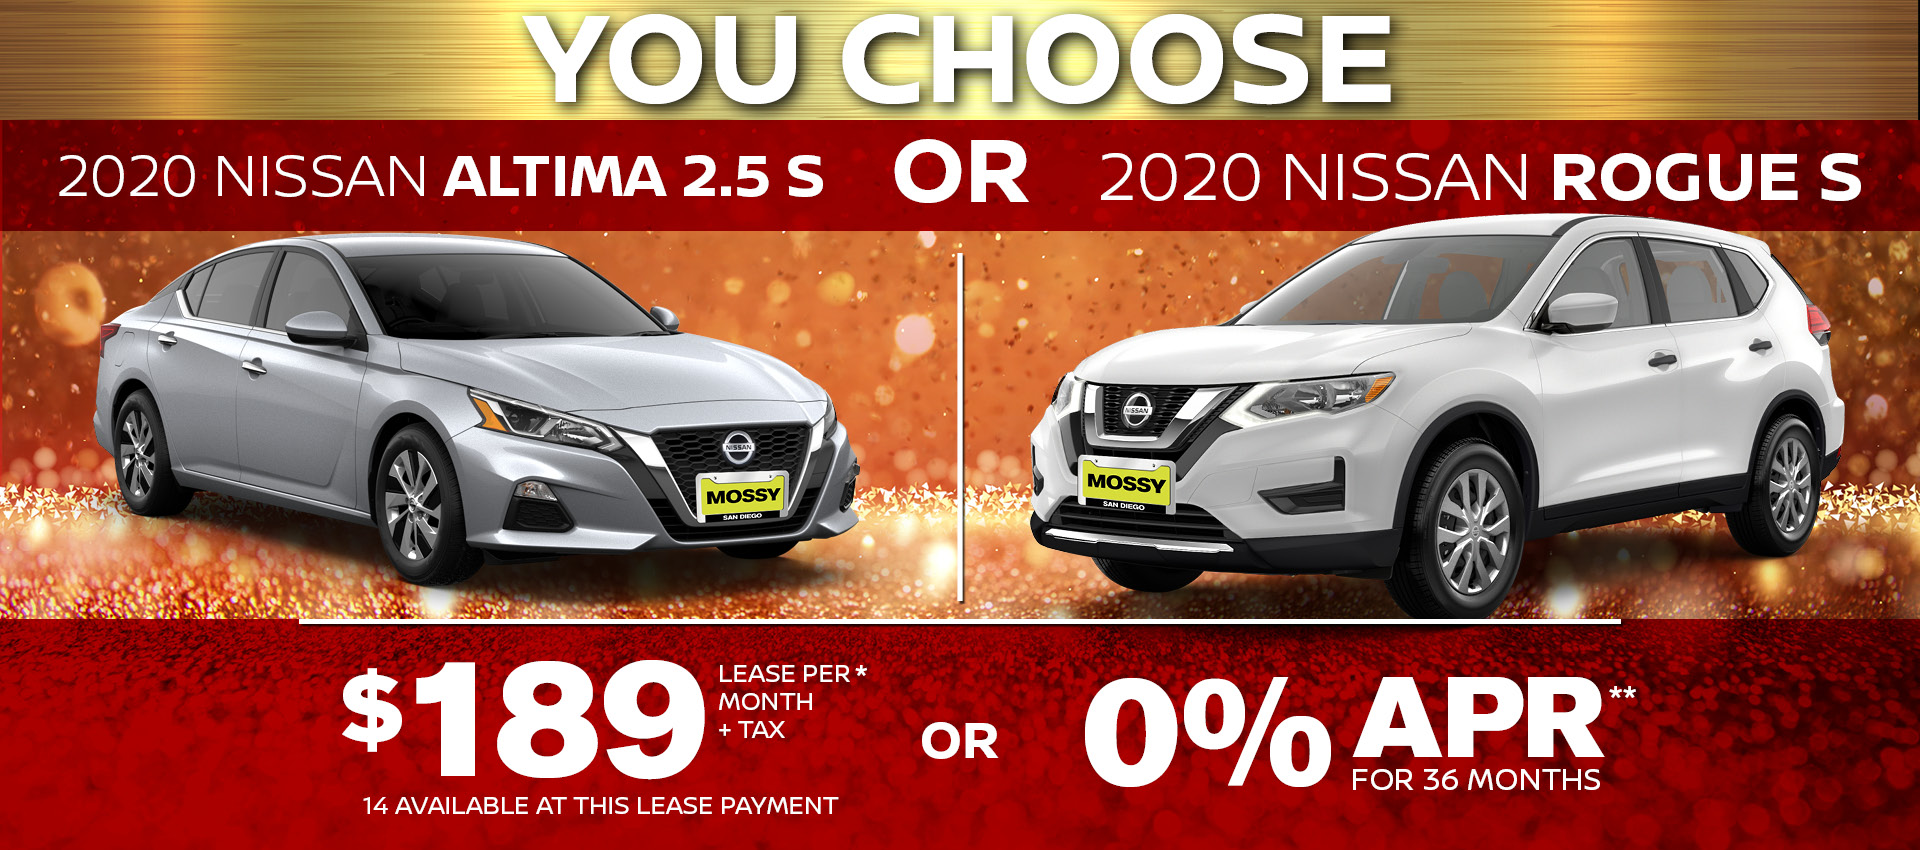 Mossy Nissan - Altima Rogue Combo HP